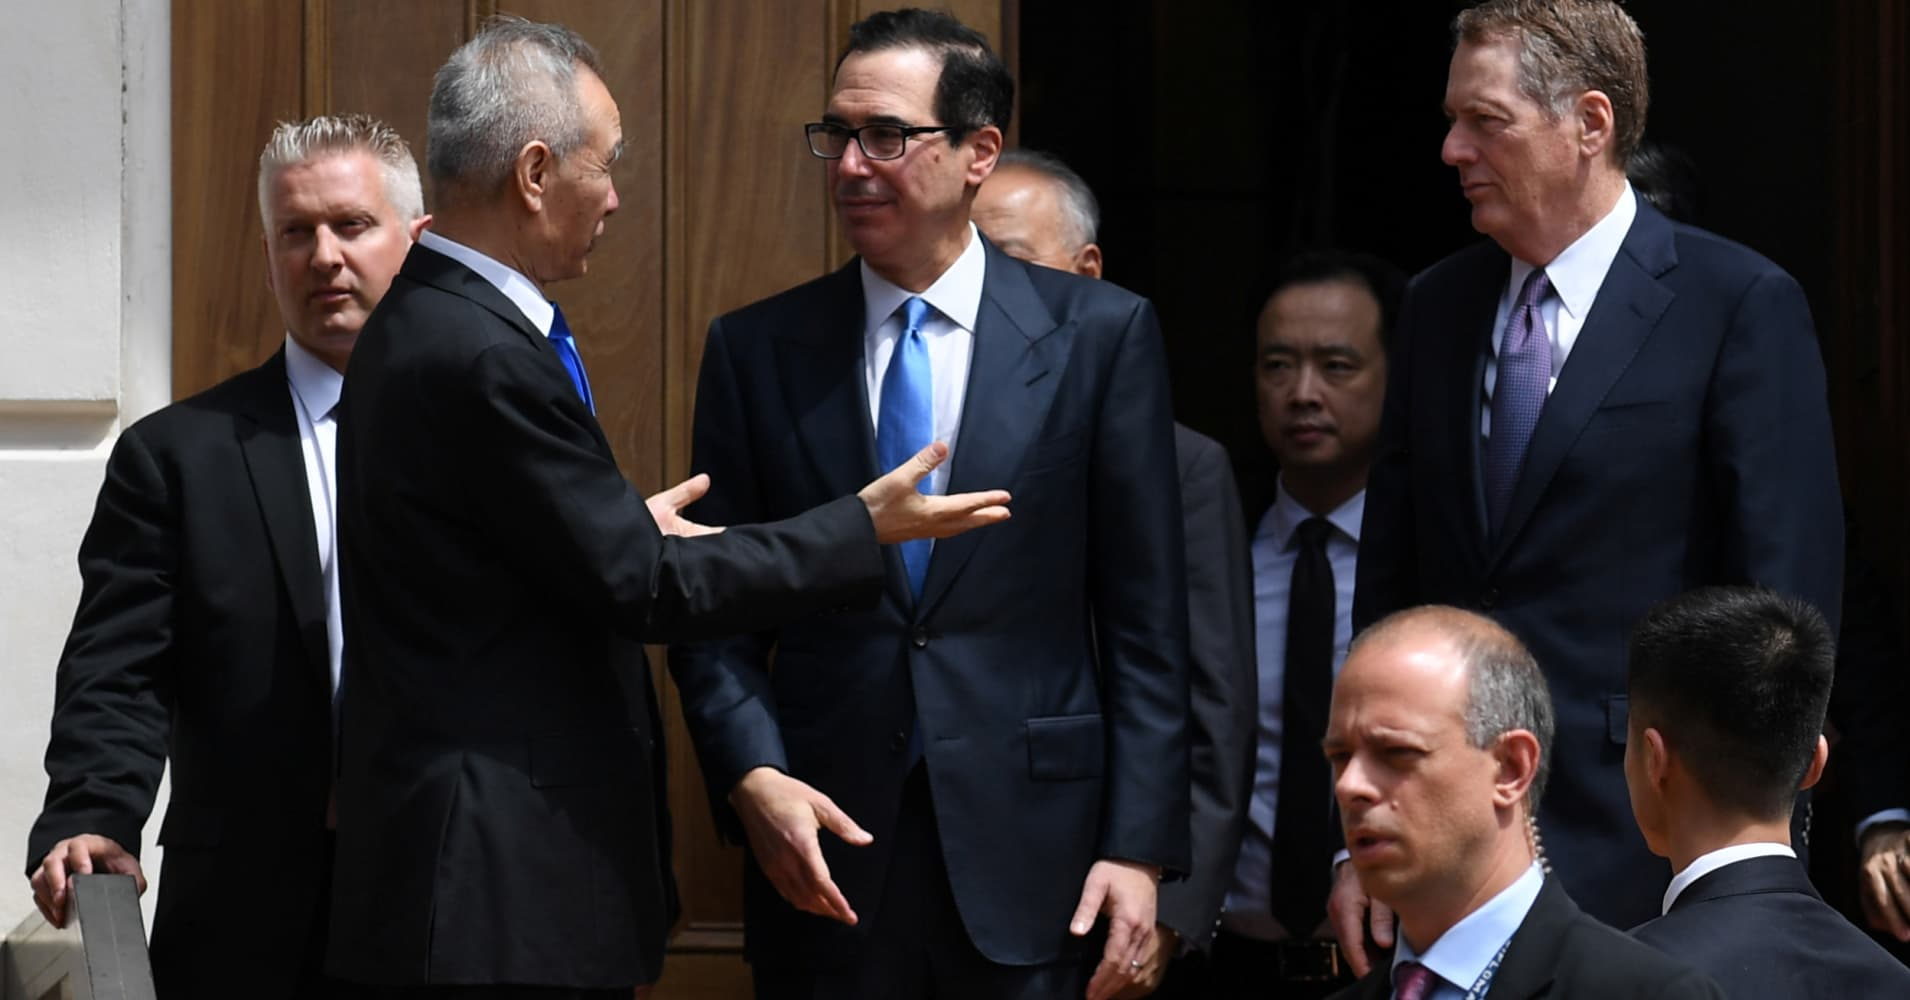 Treasury Secretary Mnuchin says China trade talks are done for the day